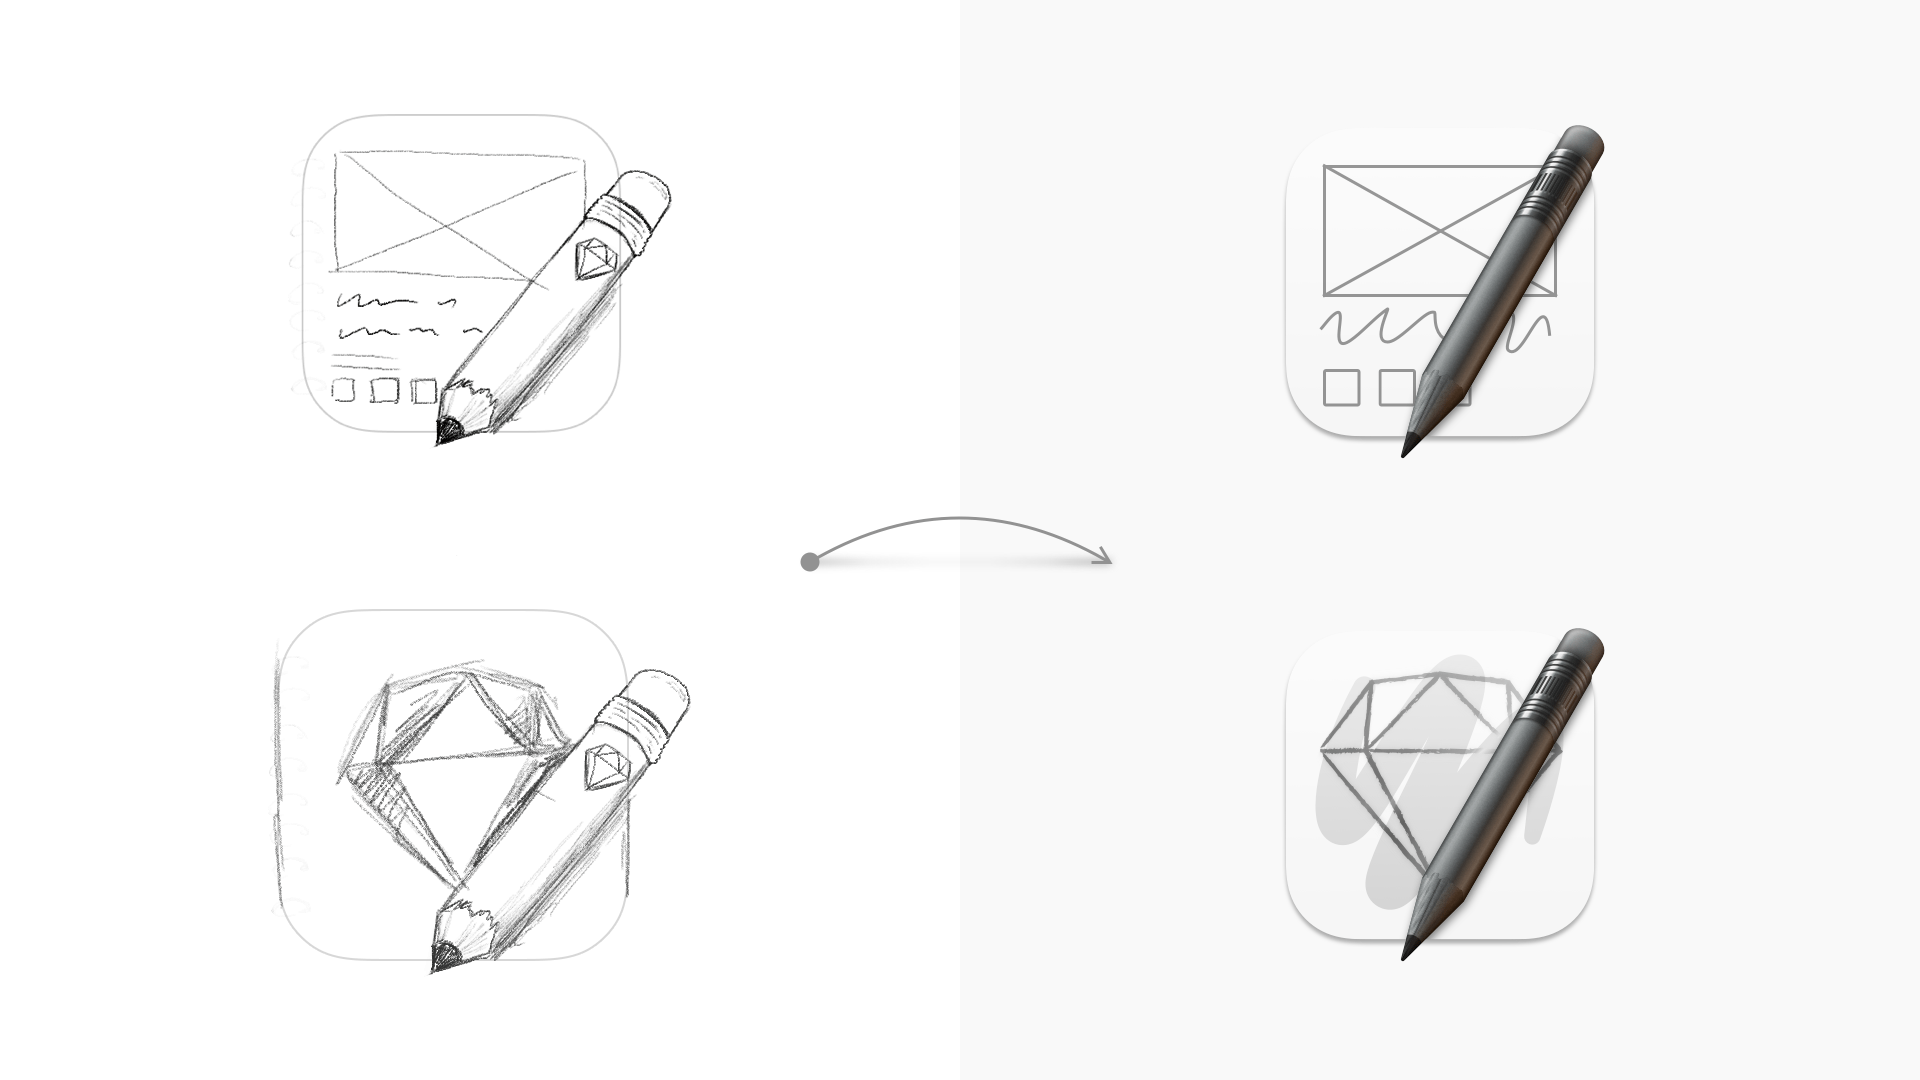 An image showing some initial ideas of icons with pencils overlaid on rectangles, with vector versions of these ideas next to them.